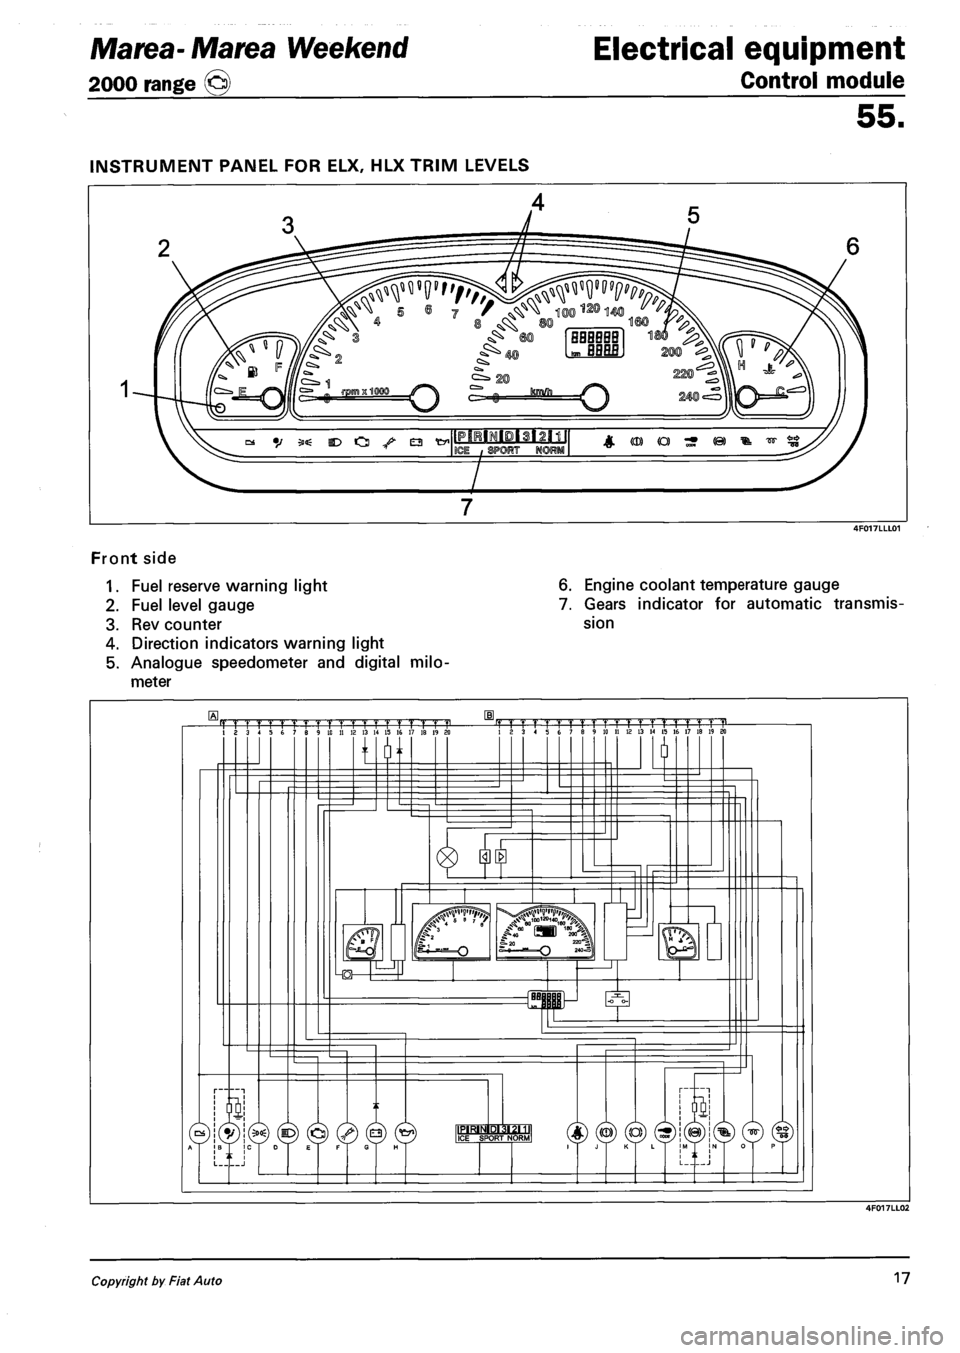 medium resolution of fiat marea 2000 1 g workshop manual page 147